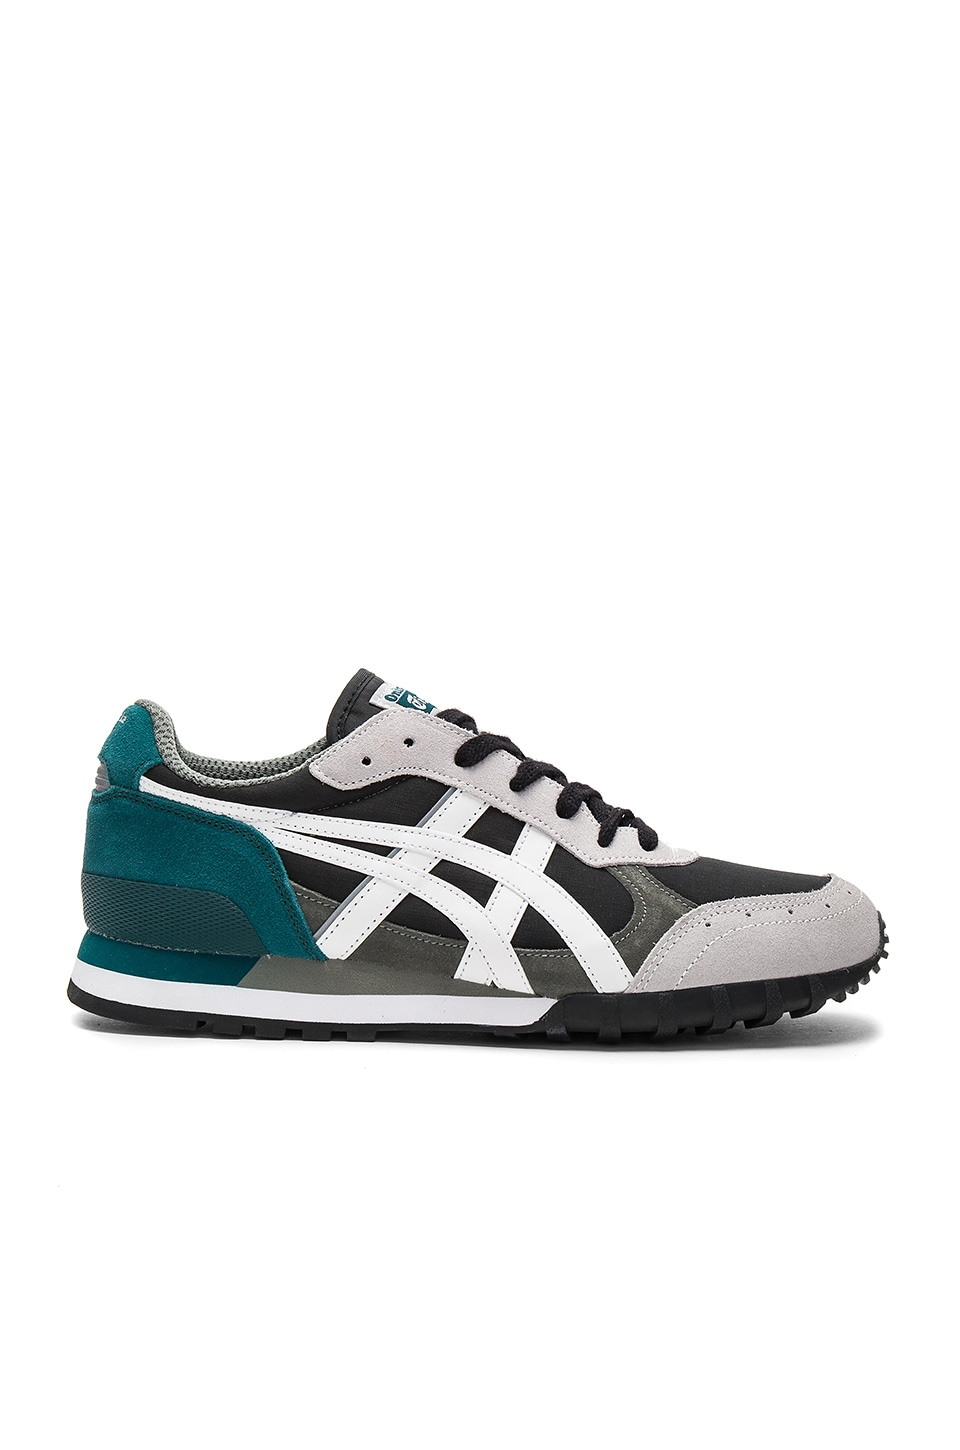 Colorado Eighty Five by Onitsuka Tiger